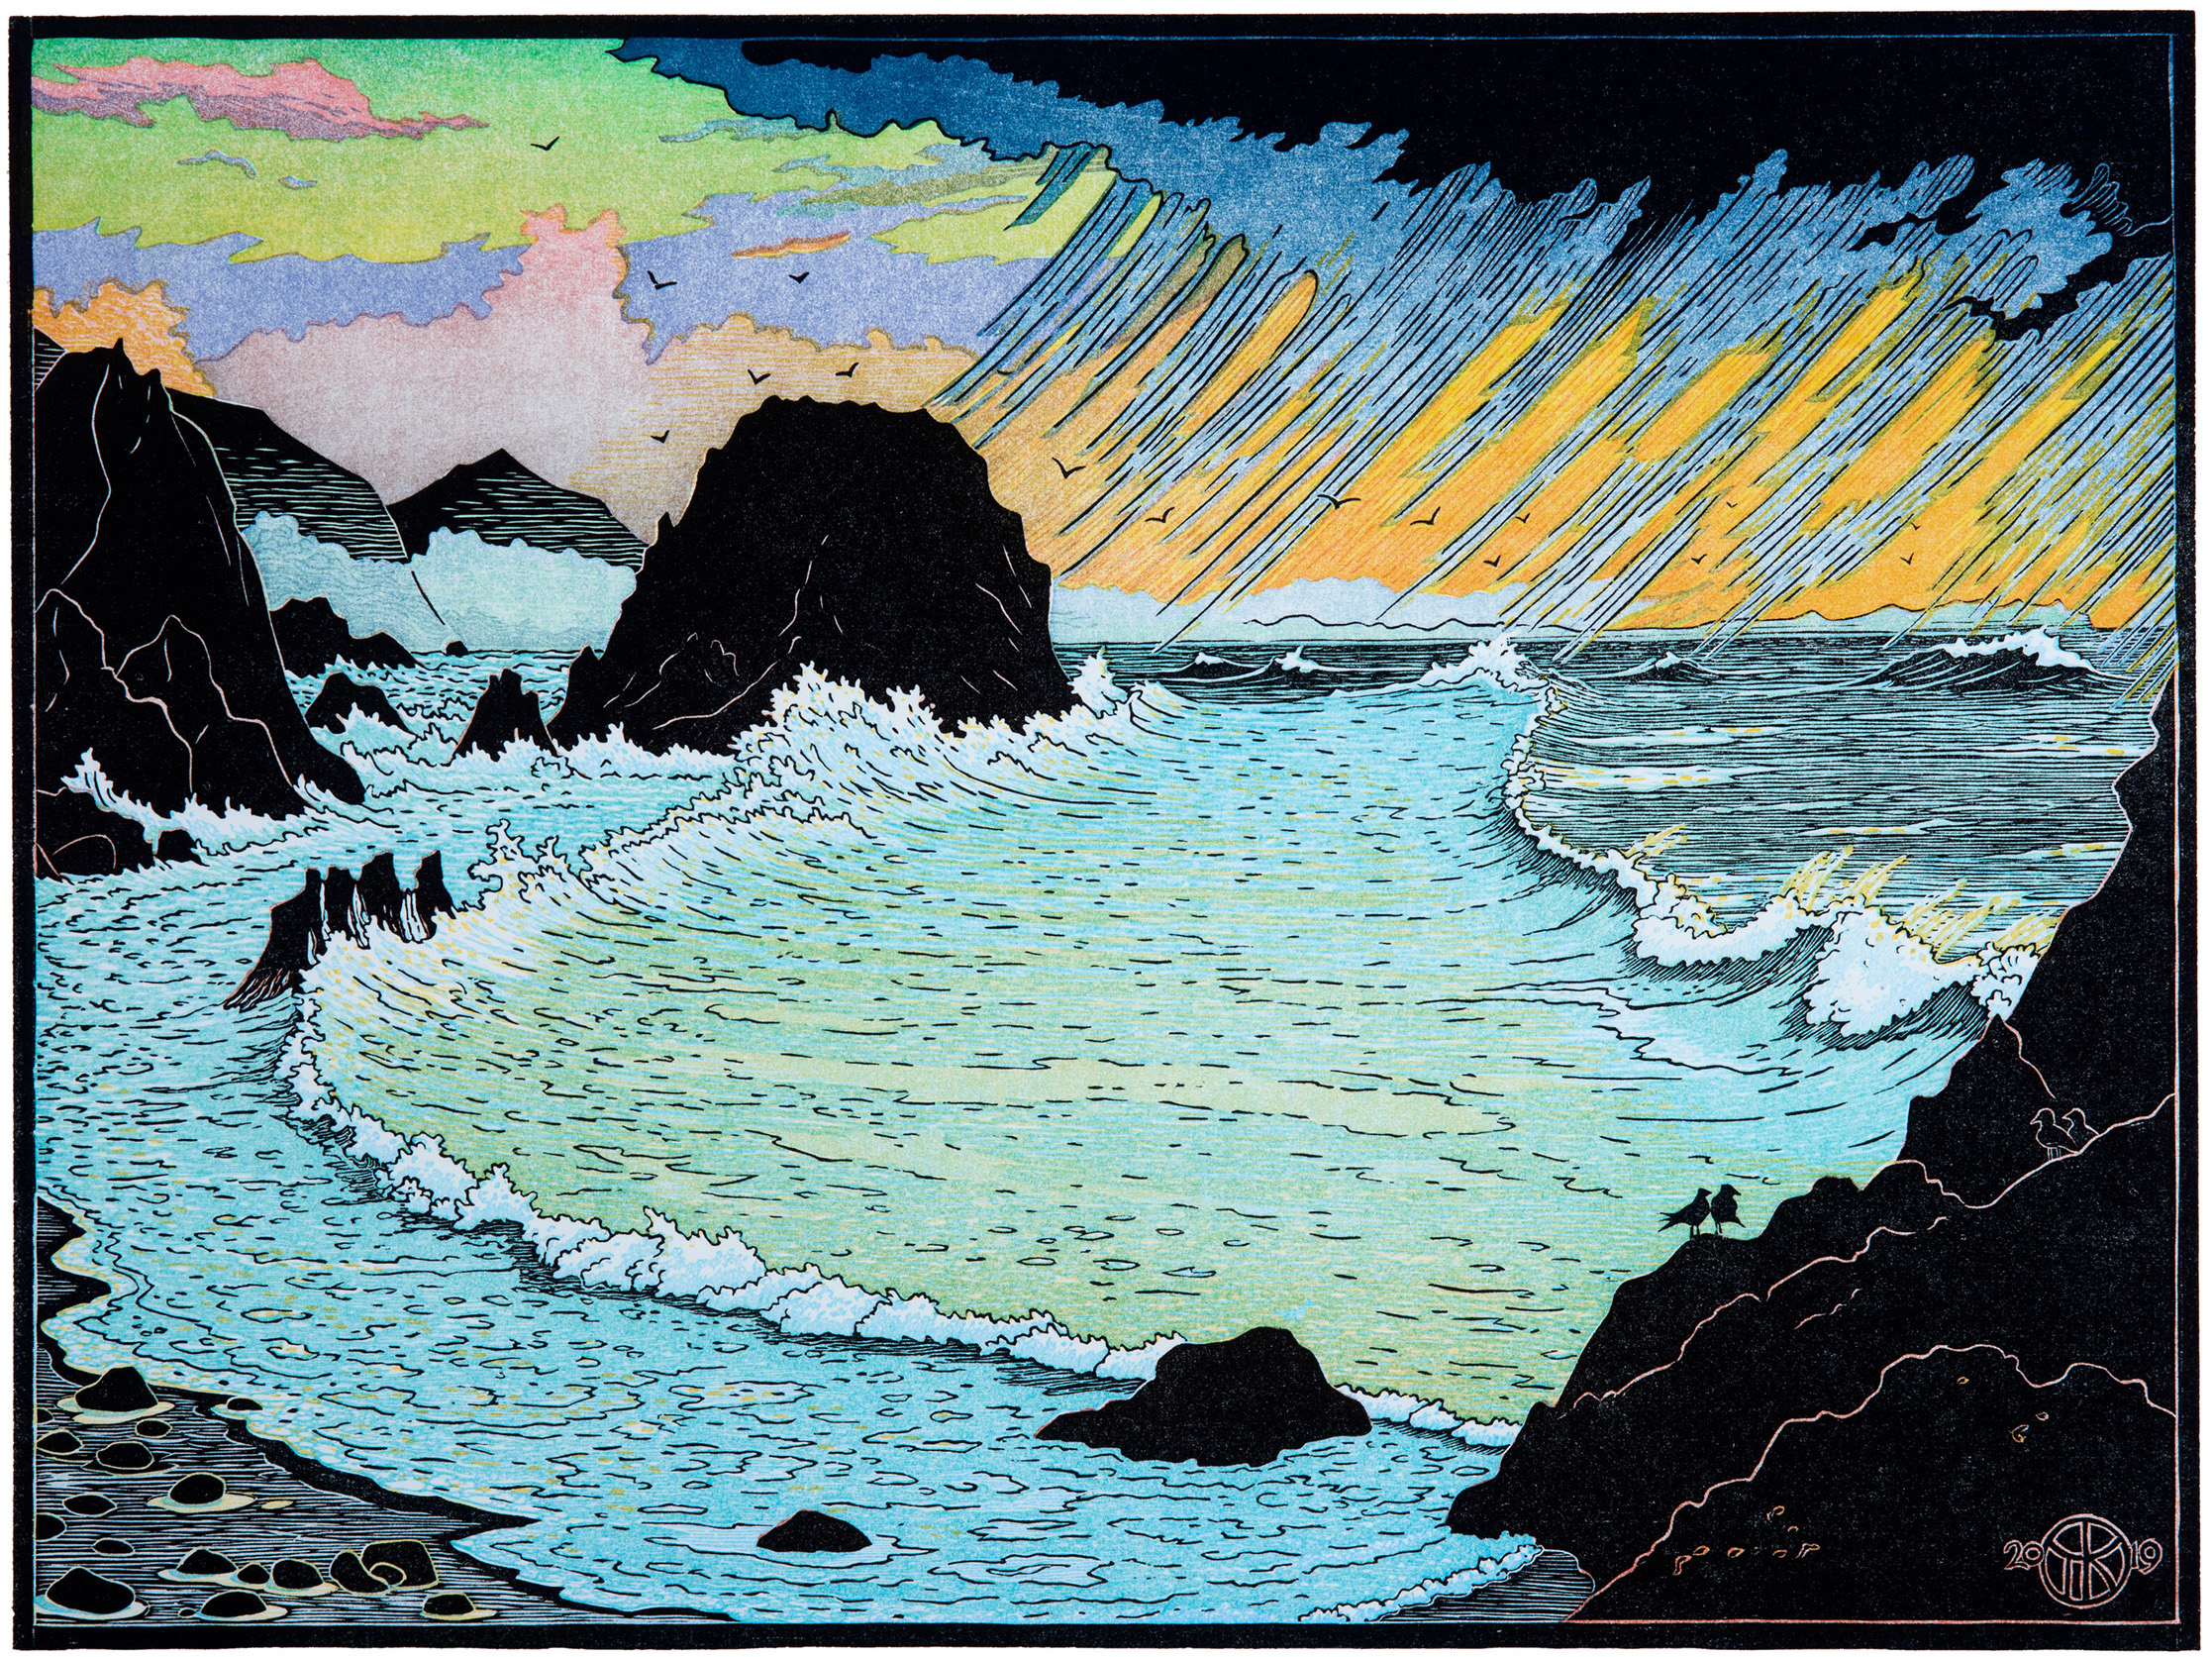 """""""Elephant Rock, Pt. Reyes"""": 11 color-layer multi-block reduction cut completed spring 2019. The scene is a winter storm beating on the coast just south of McClure's Beach, with the Pt. Reyes peninsula visible through rain on the horizon. The key block was cut in cherry wood, and color blocks were shina.  On the right you can see some of the steps in making this 11-color layer print, beginning with a photo of the scene and progressing thru carving some of the blocks in cherry and shina woods, printing various color layers and deciding to add more layers to golden-yellow and green-blue sea colors after experimenting with key block proofs of the black layer over earlier color combinations. Along the way you can see that the 'rain block' was used to transfer a second pattern for registering carving of sky between the rain spouts. You can also see an example (yellow block) of the paper 'make-ready' Killion places under the blocks to build-up areas to print darker (so that other areas can be lighter). At bottom are the final color layers juxtaposed with a proof of the black key block layer that was printed last to make the finished print (although in this case two more reduction-cut layers of the blue-green sea block were printed  after  the key block to satisfy the artist!)."""